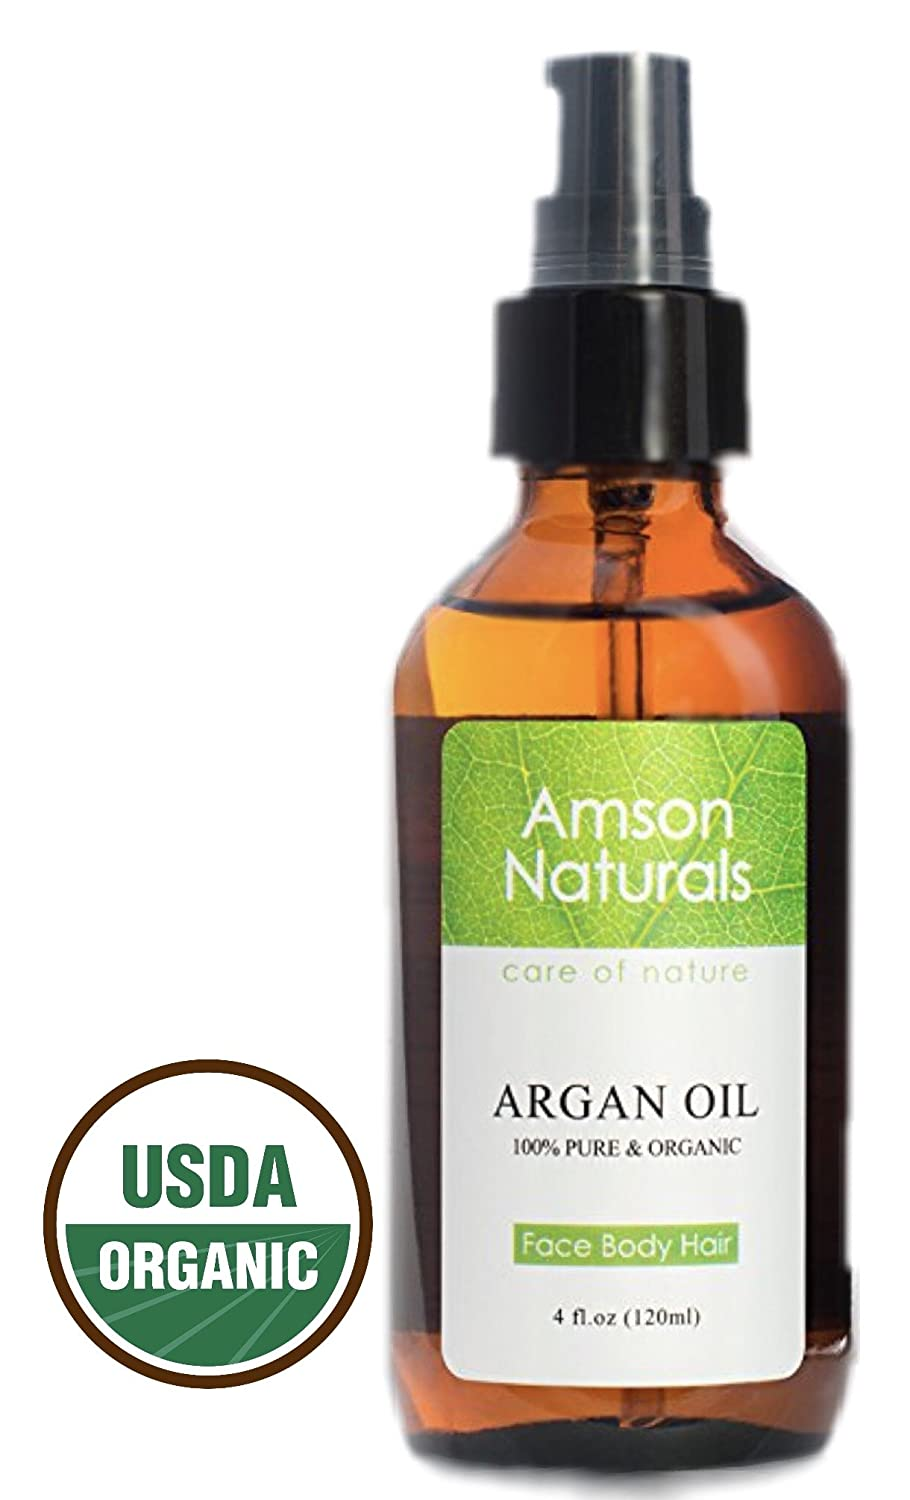 ARGAN OIL 100% Pure & USDA Organic 4 0z (120ml) by Amson Naturals for Face, Body, Nail and Hair Health and Beauty.Best Cold Pressed, Natural Antioxidant, Anti-Aging Moisturizer For All Skin & Hair Types From Morocco Premium Quality Pravada